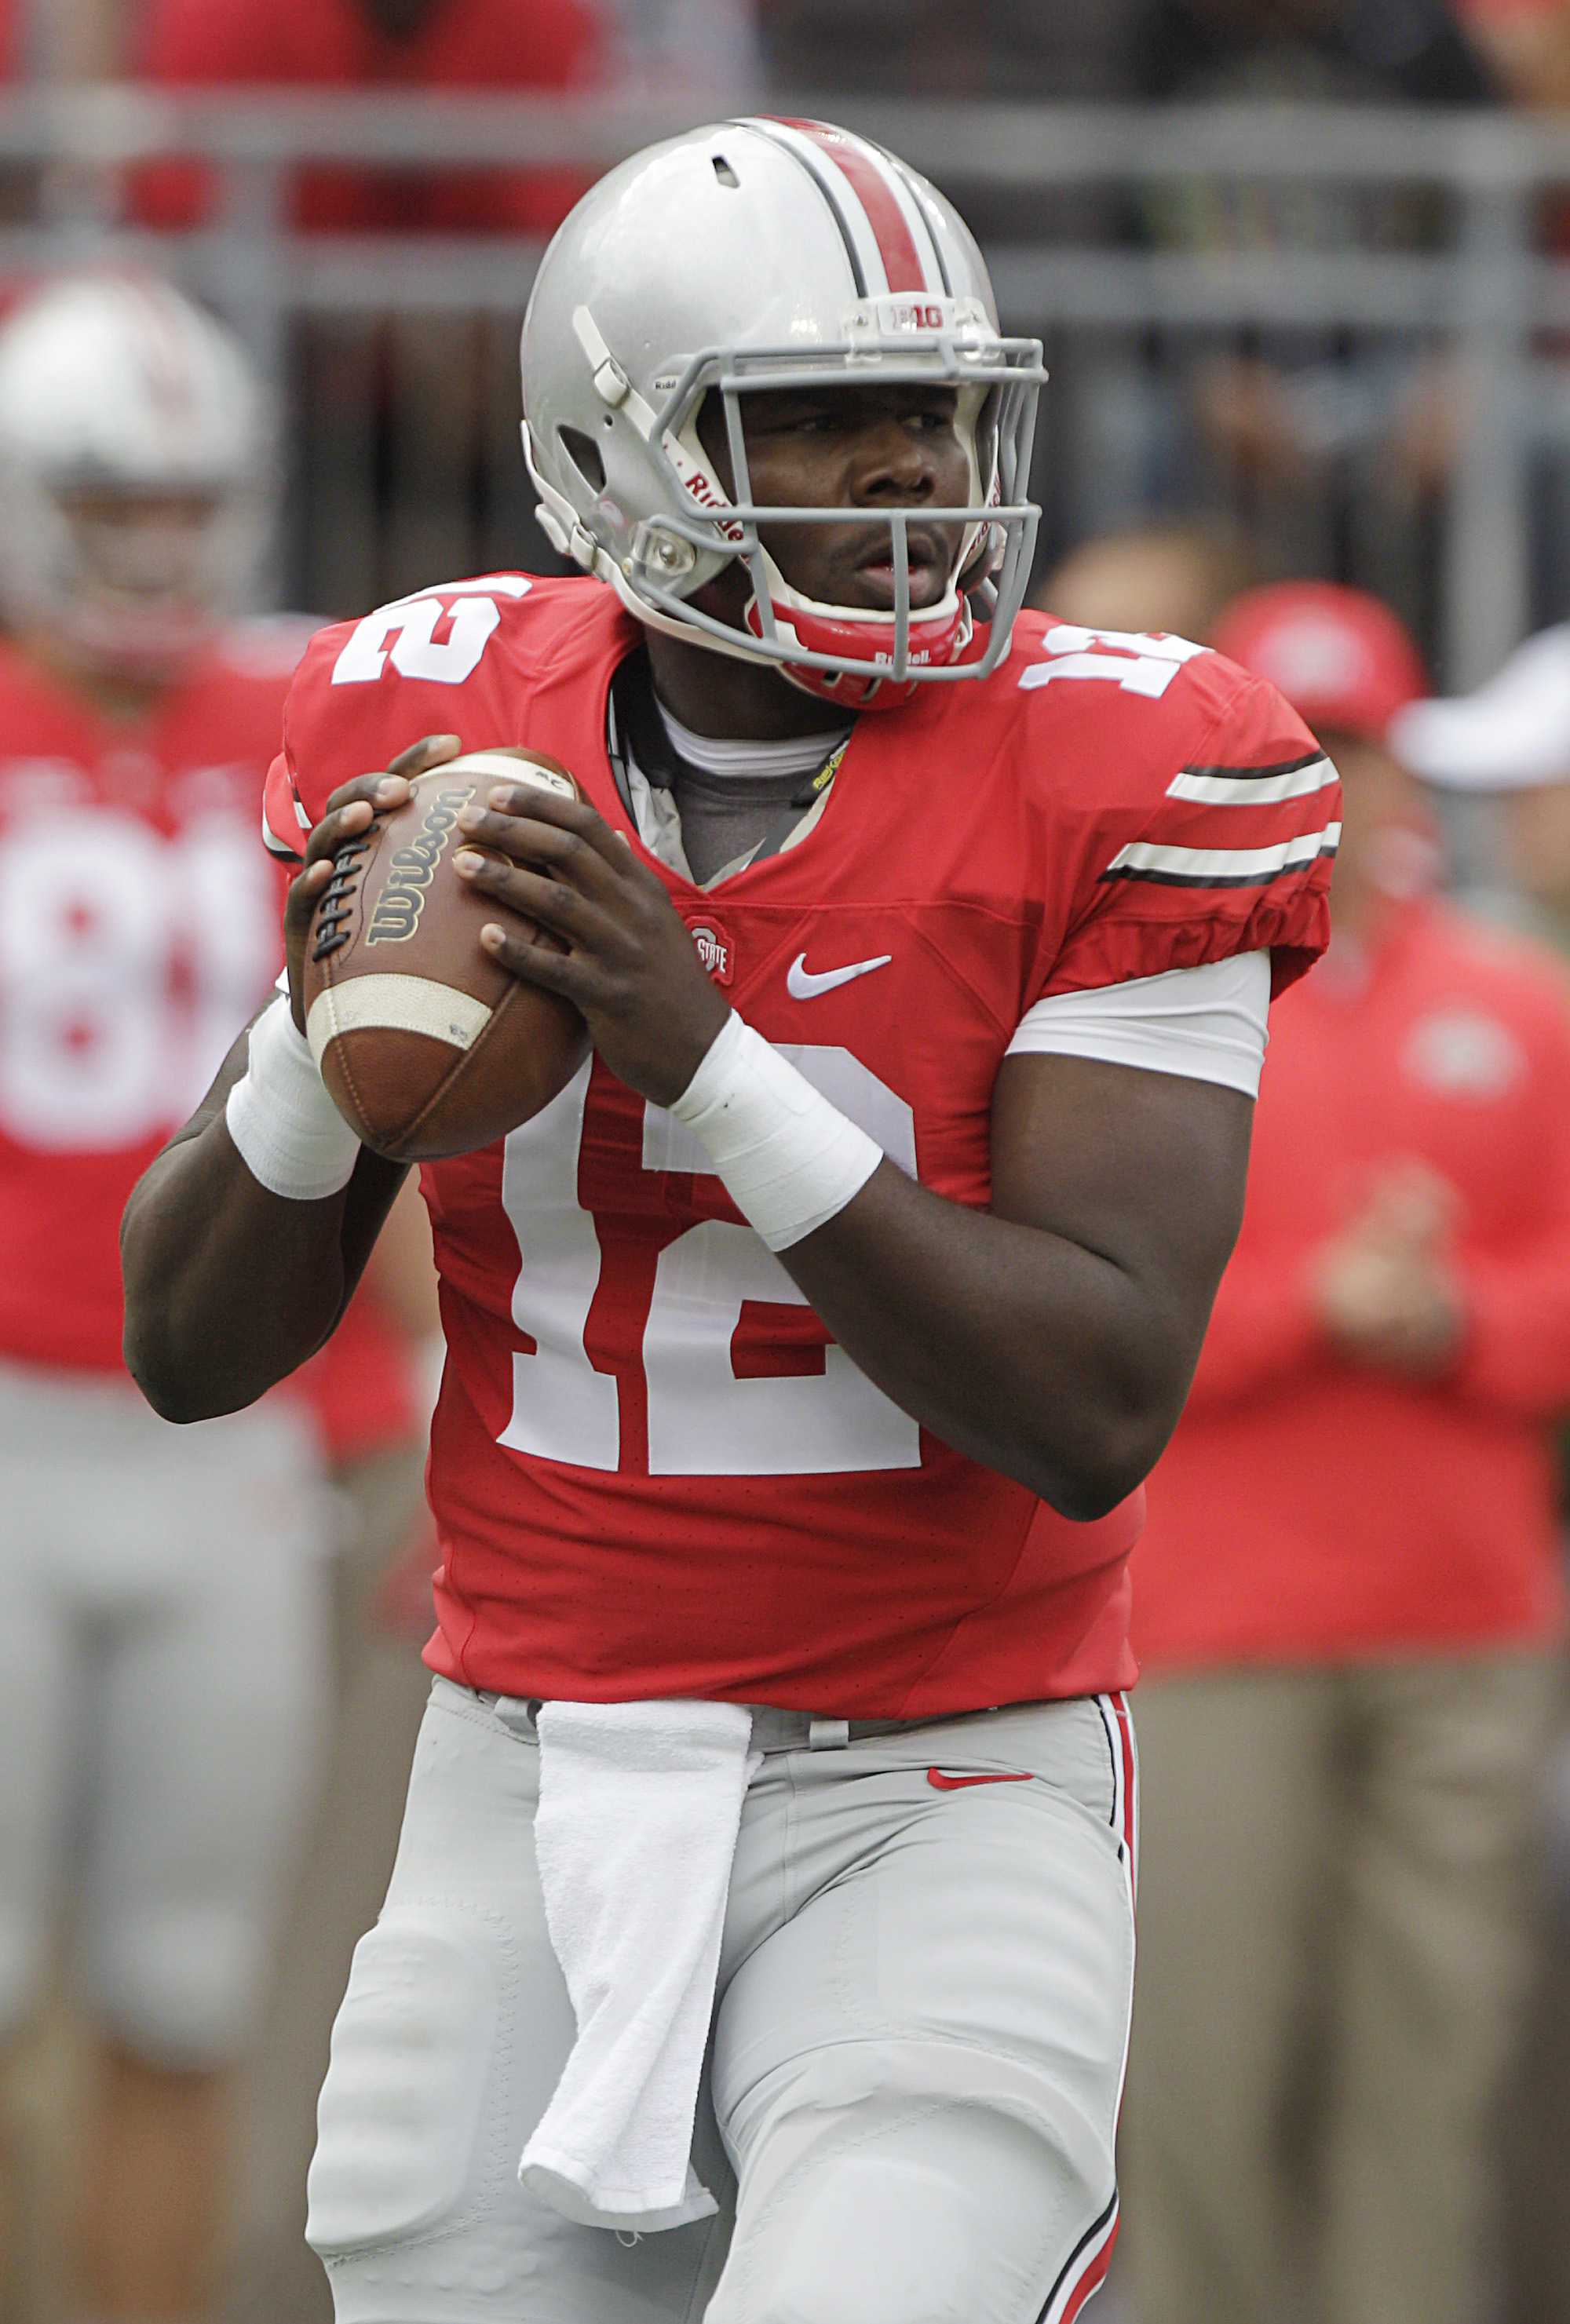 Ohio State quarterback Cardale Jones drops back to pass against Western Michigan during the first quarter of an NCAA college football game, Saturday, Sept. 26, 2015, in Columbus, Ohio. (AP Photo/Jay LaPrete)